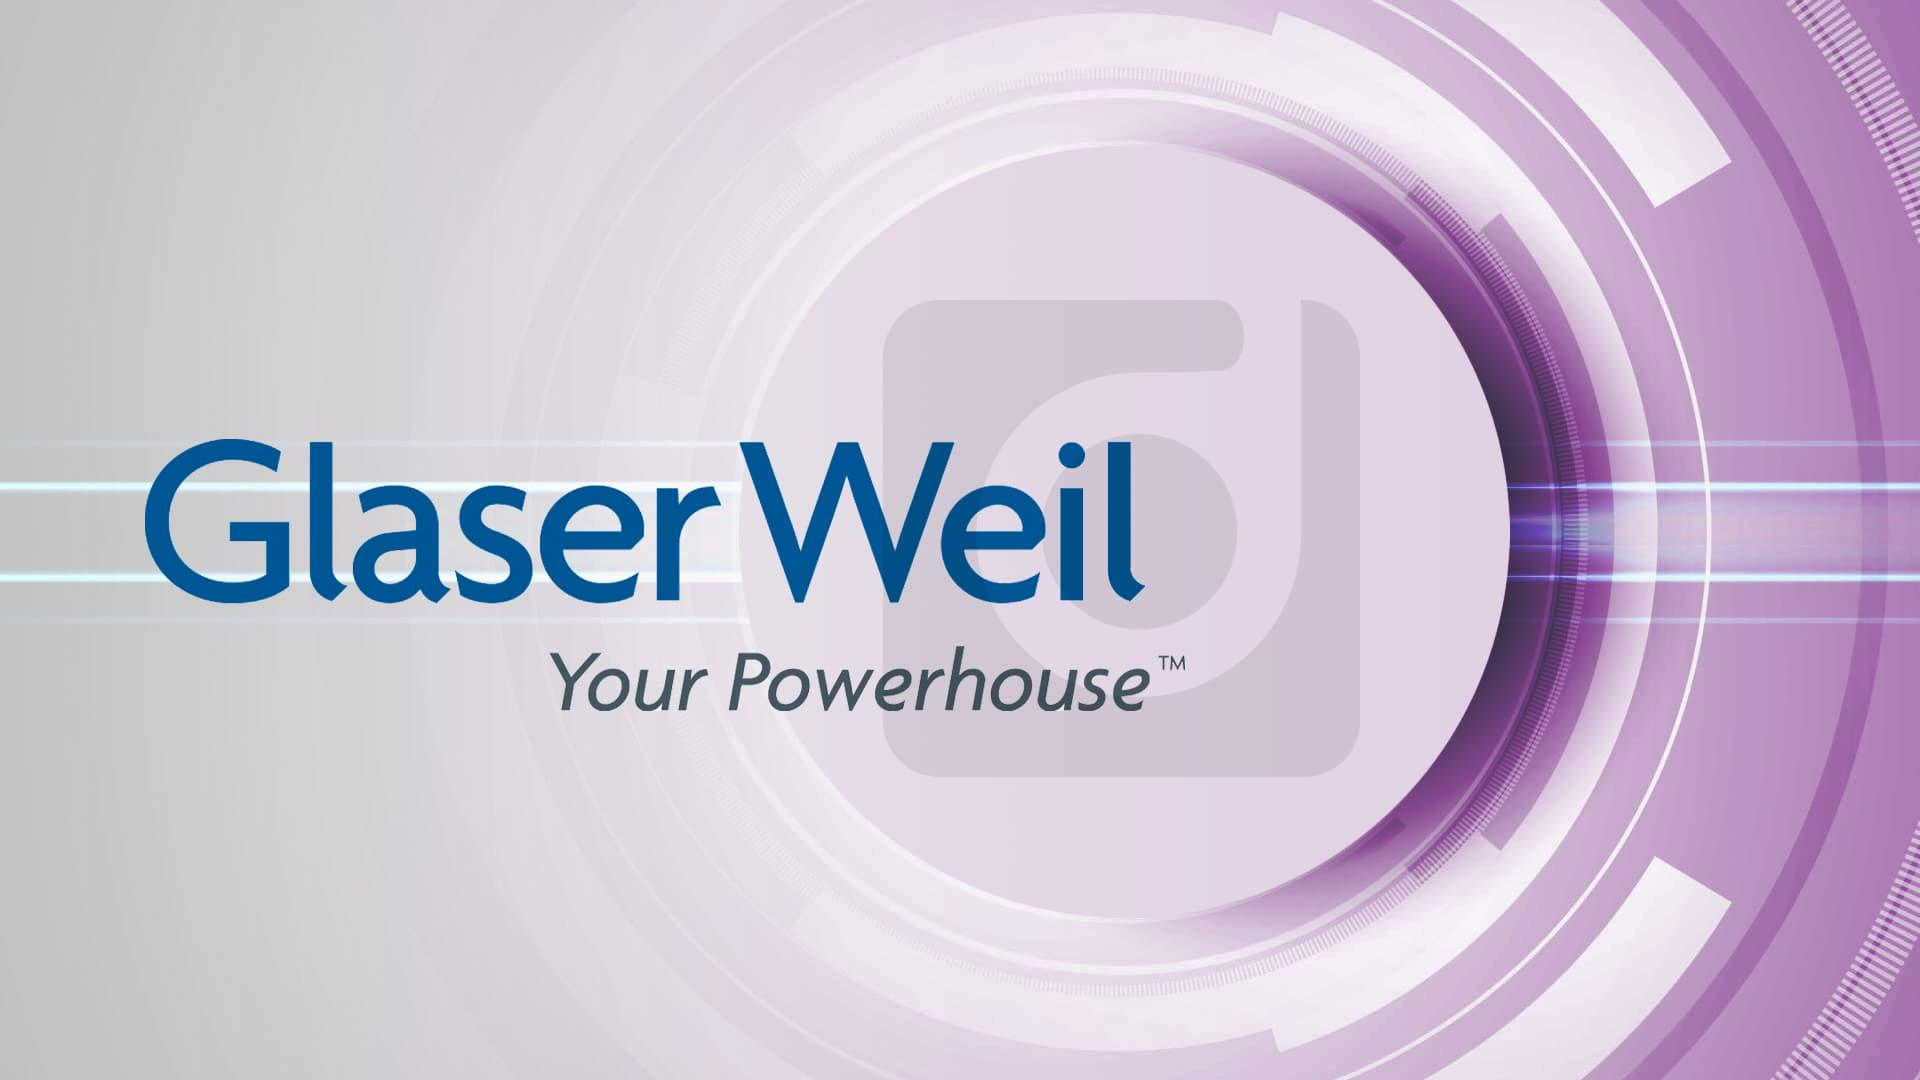 Highly-awarded LA law firm Glaser Weil will use cleanDocs server to remove sensitive information from email attachments